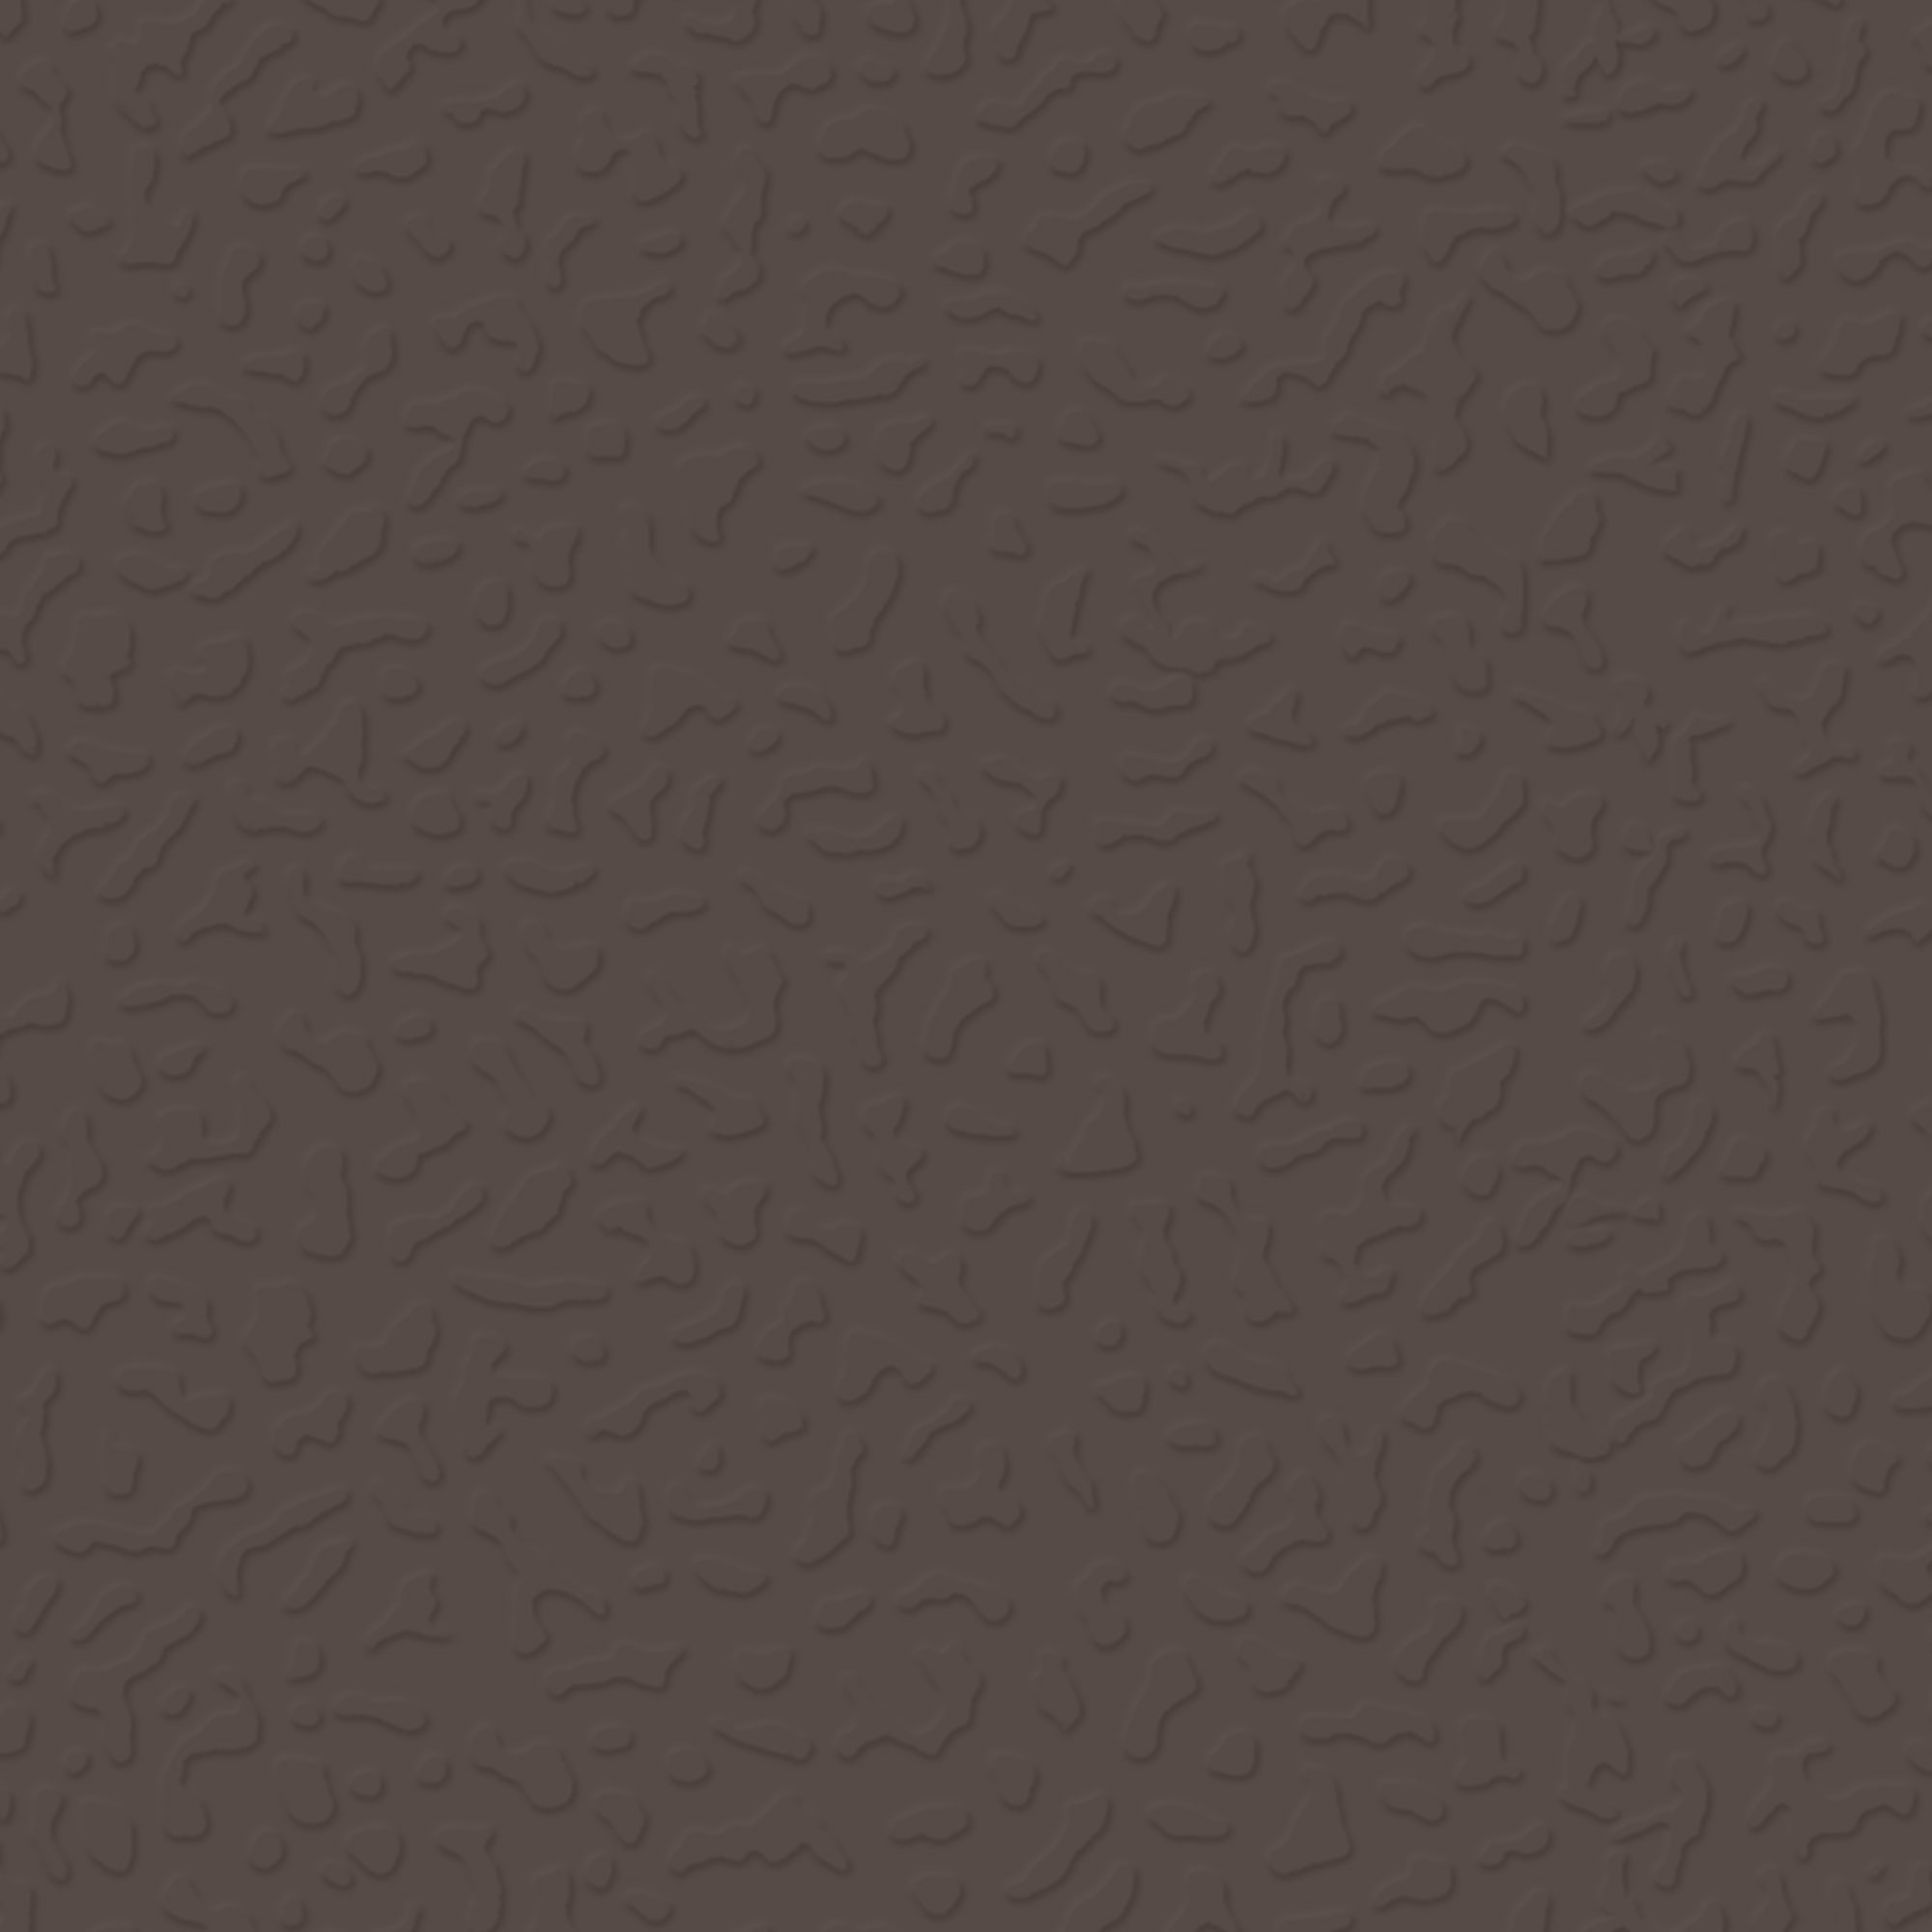 Roppe Rubber Tile 900 - Textured Design (993) Light Brown LB996147